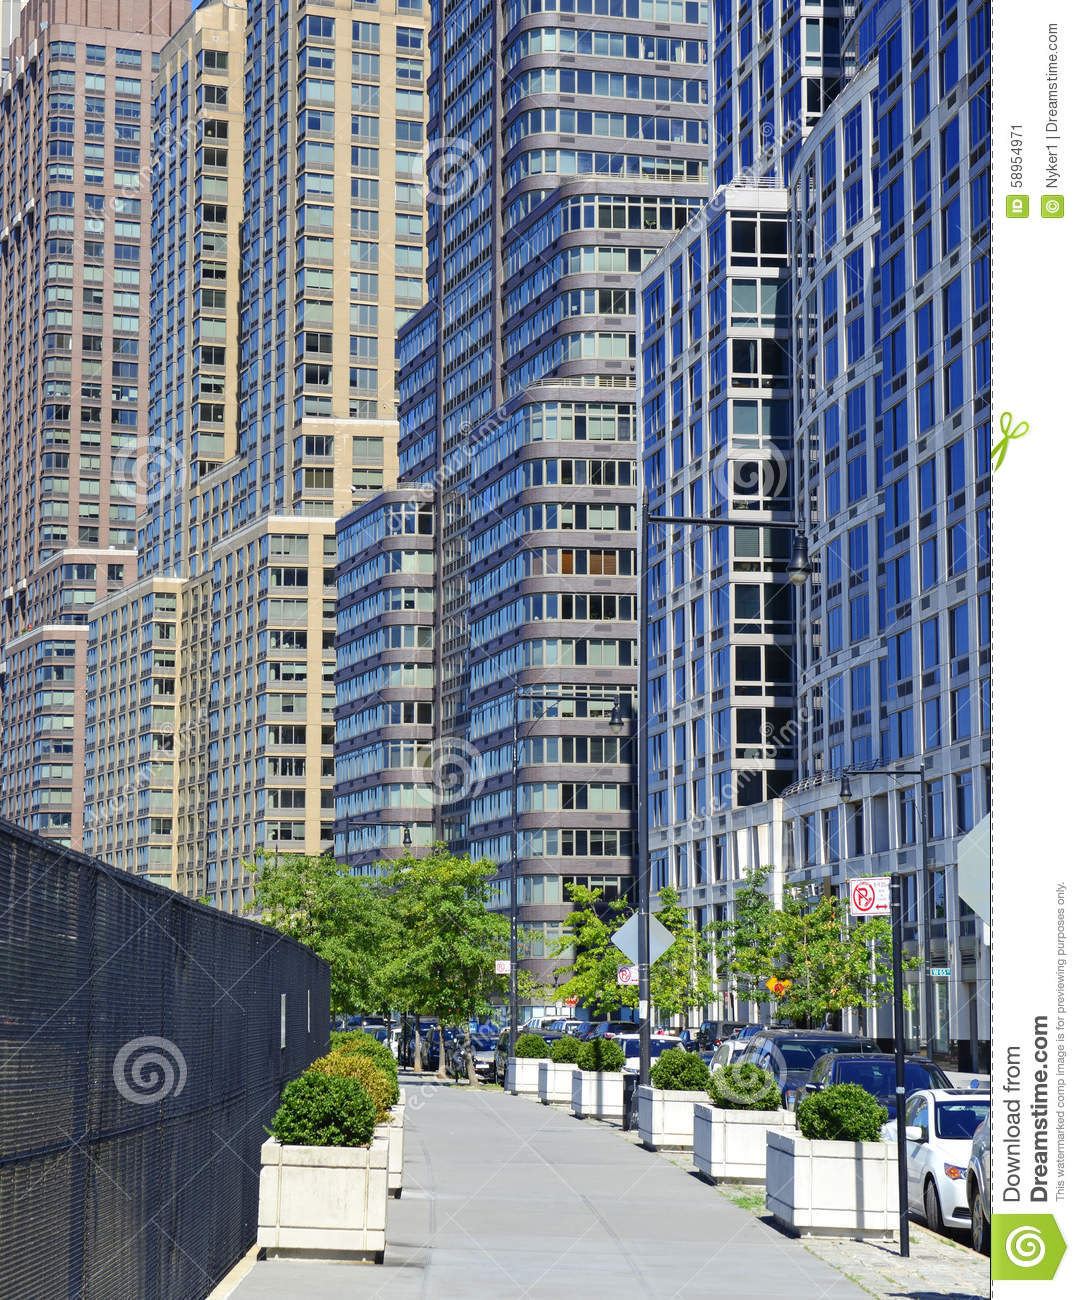 Manhattan Apartments: Tightly Packed High Rise Apartment Buildings, Manhattan